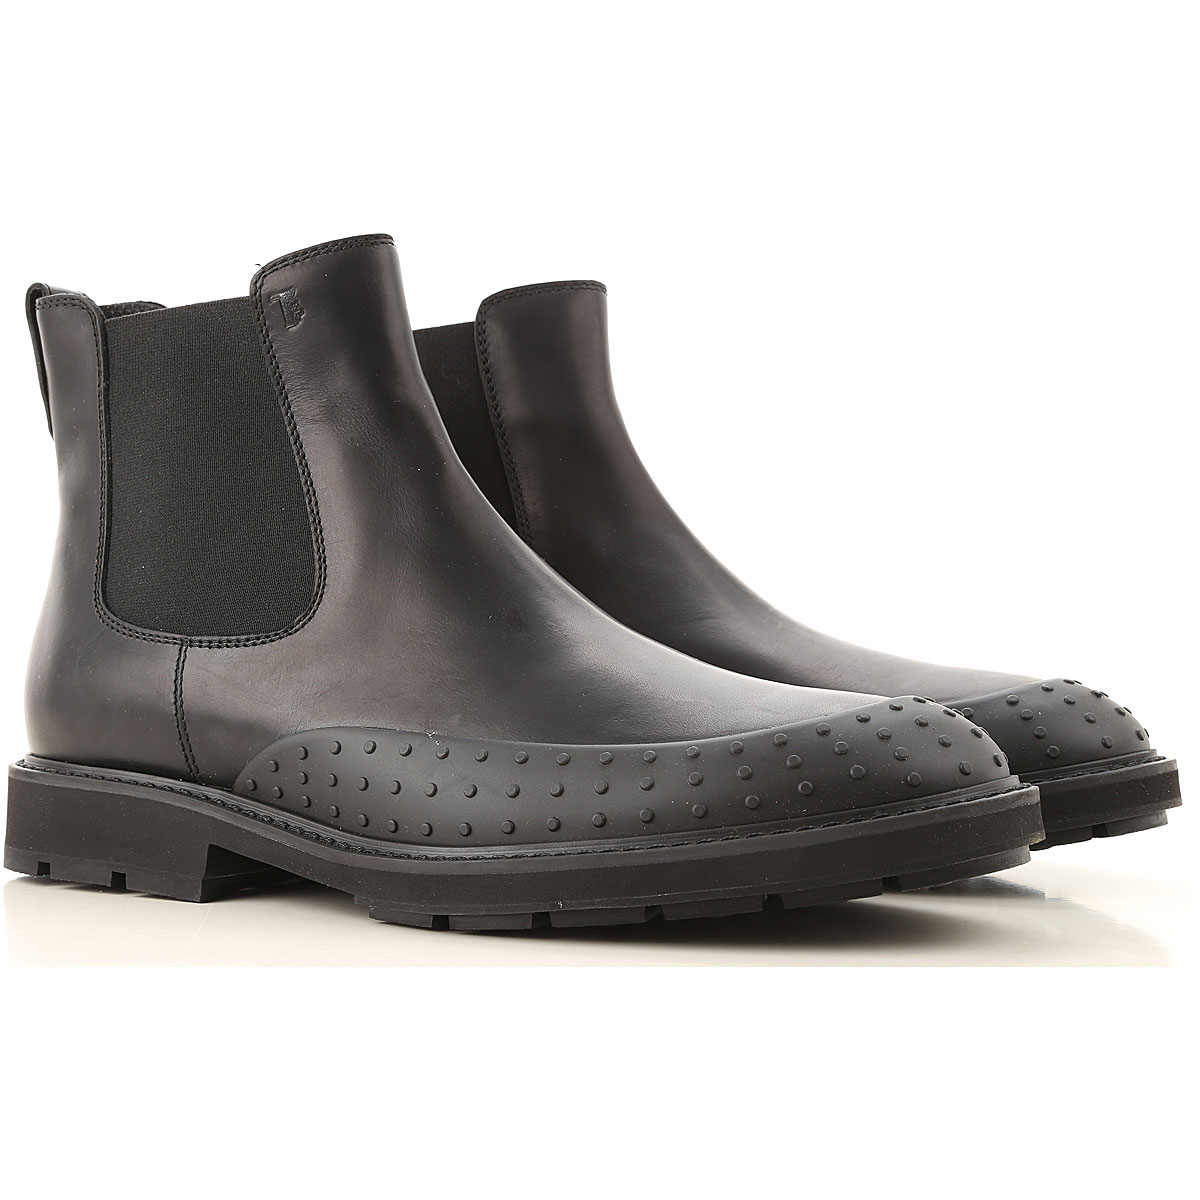 Tods Boots for Men, Booties On Sale in Outlet, Black, Leather, 2019, 10 11 6 7.5 8 9 9.5